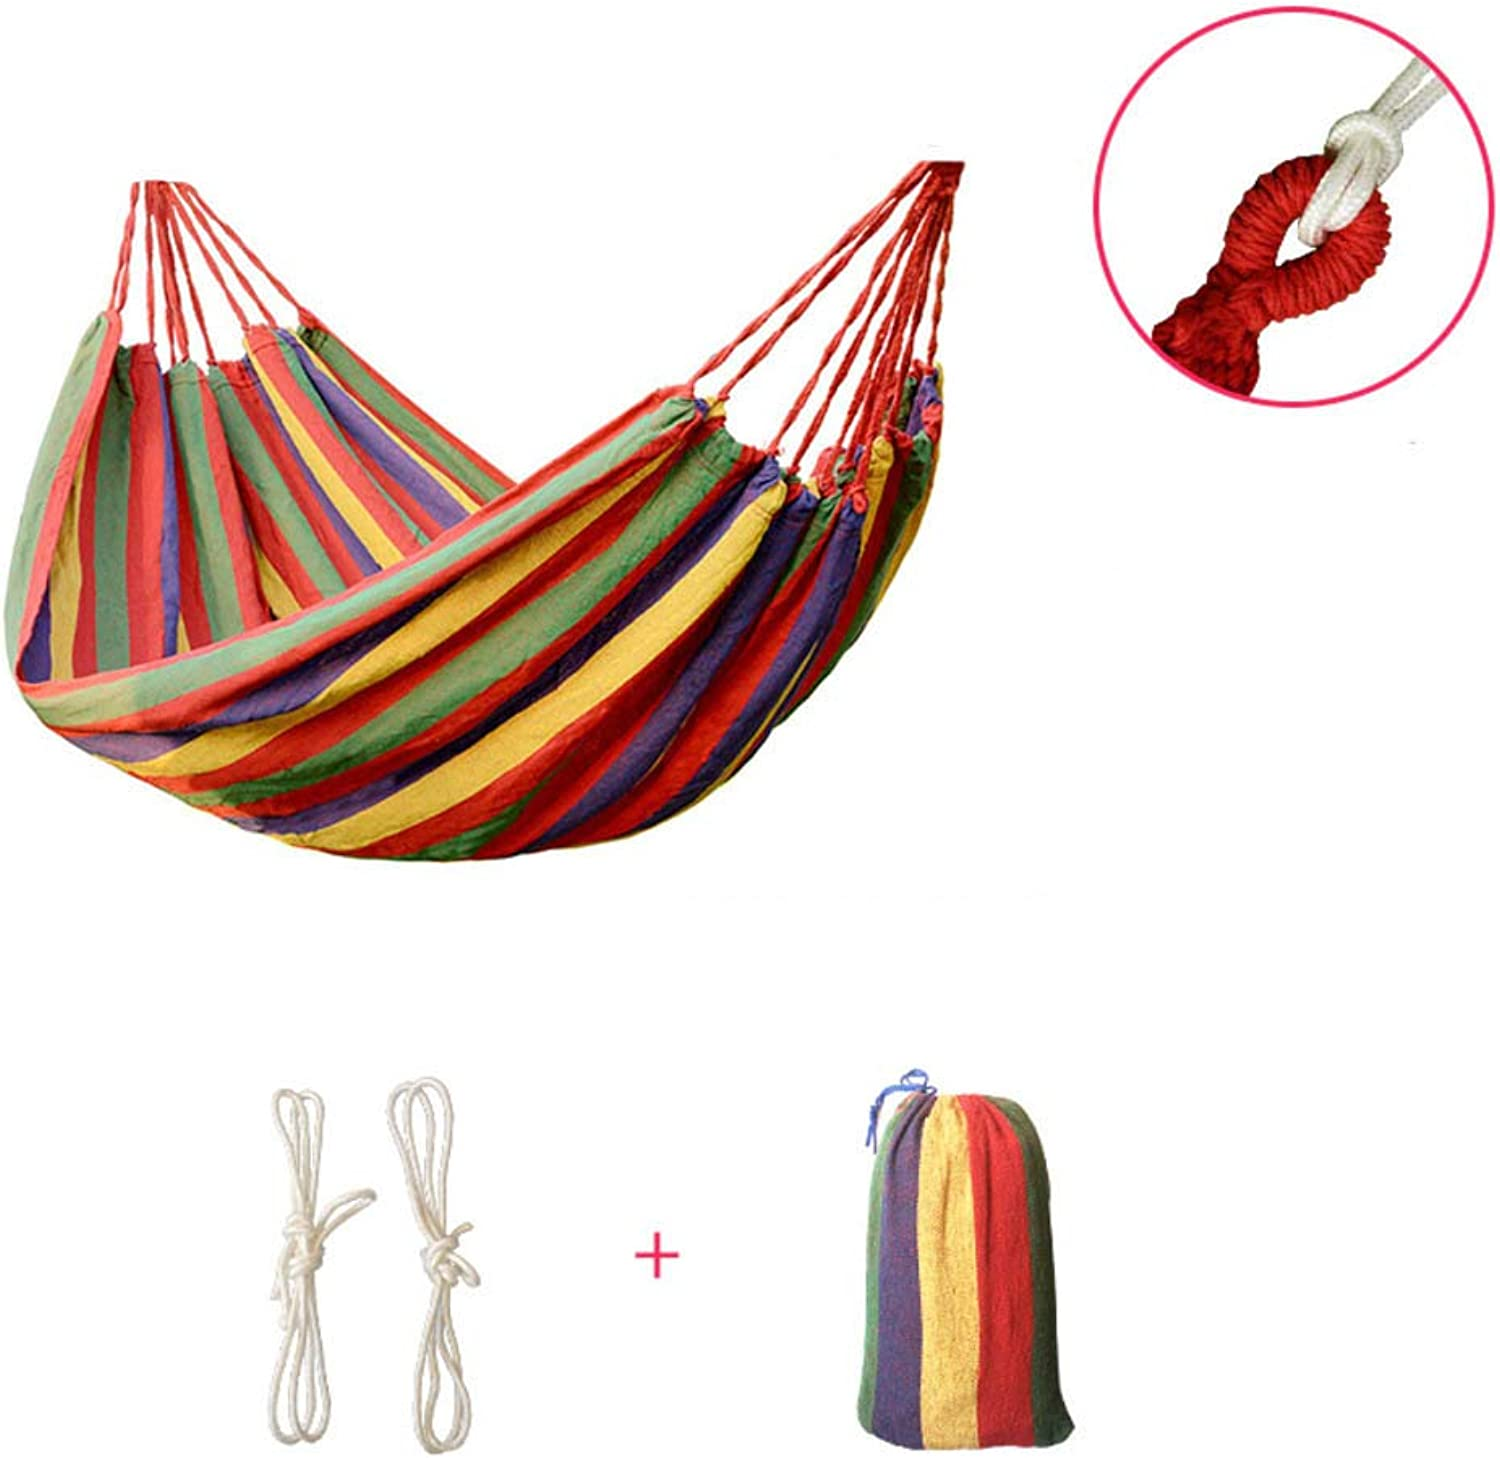 Single & Double People Canvas Hammocks Outdoor Travel Ultralight Camping Portable Beach Swing Bed Tree Hanging Suspended Hammock-red 190x150cm(75x59inch)